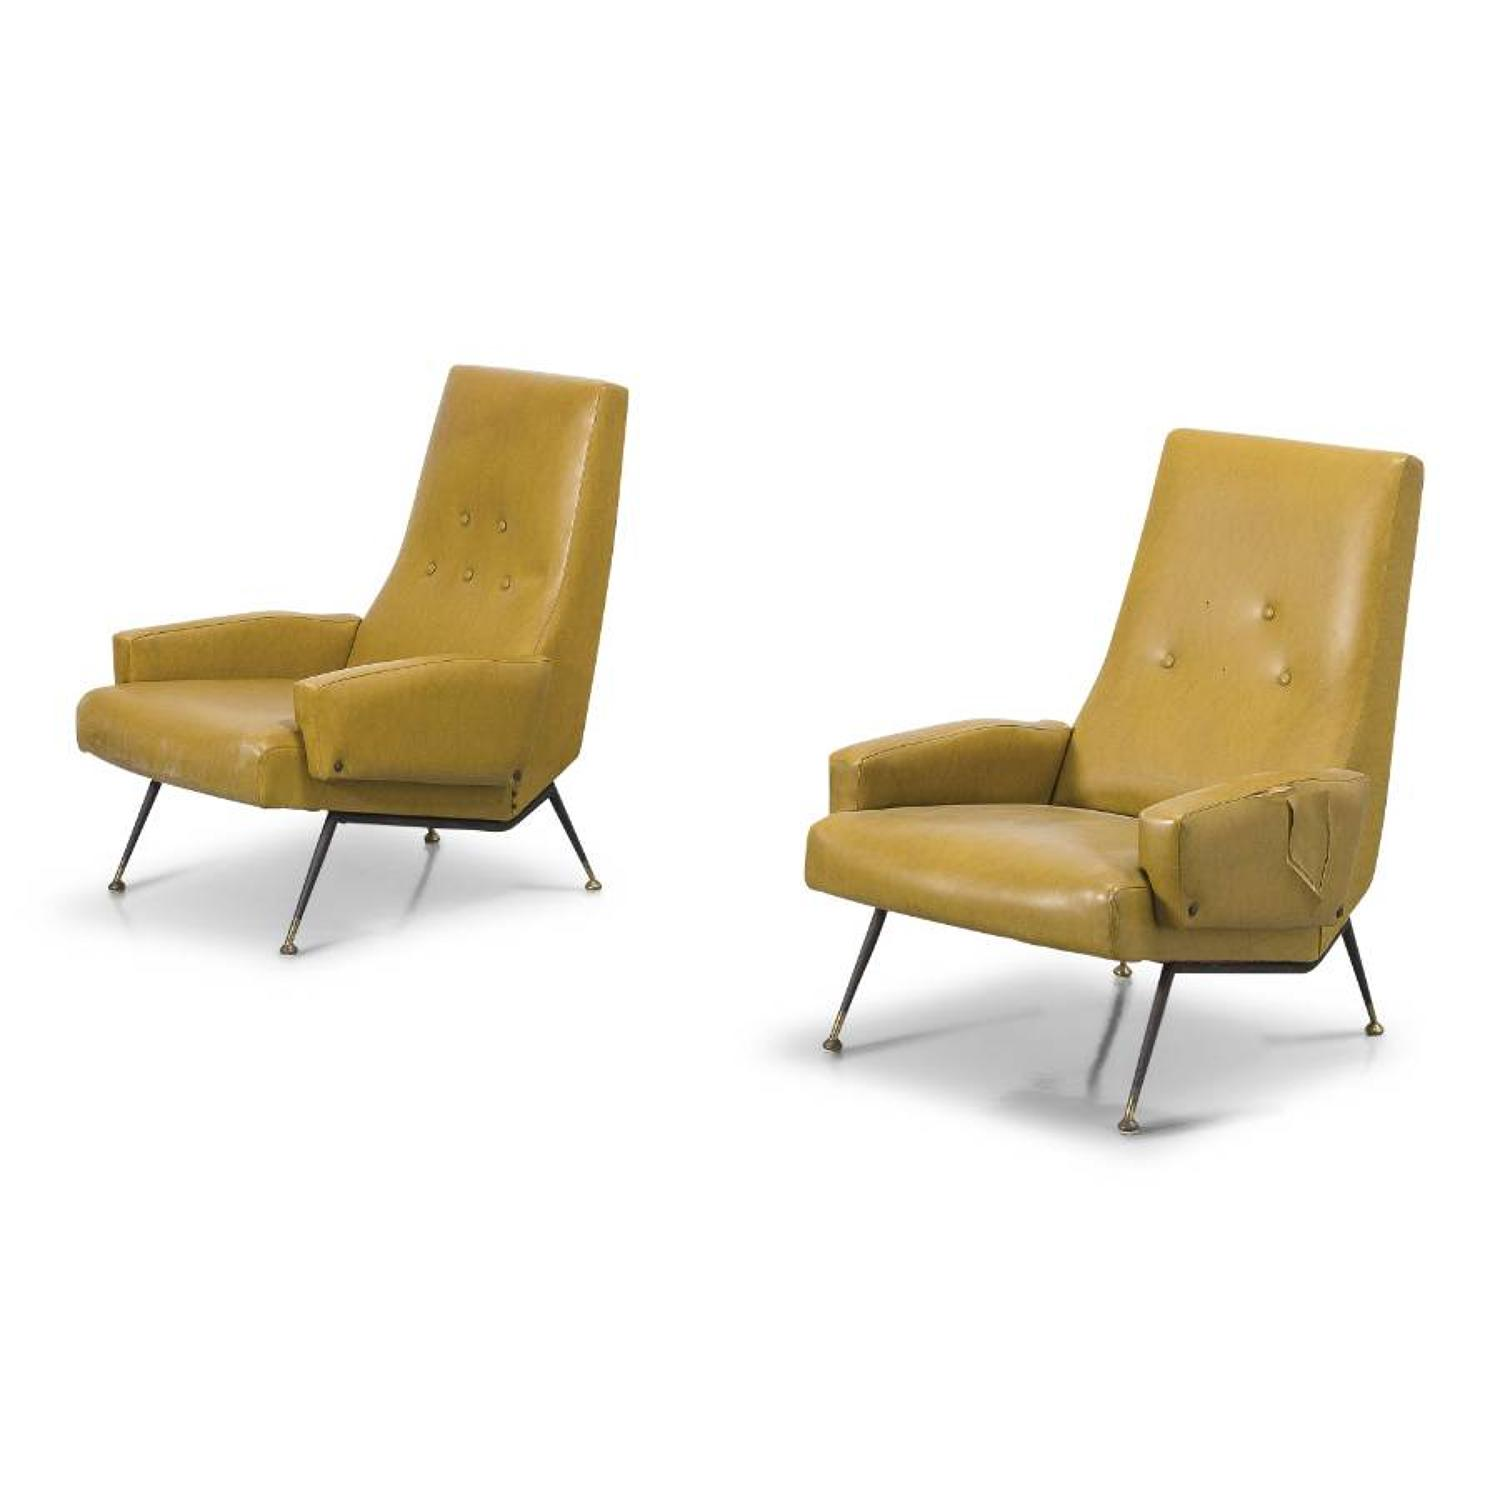 A pair of 1950s Italian armchairs with metal and brass legs